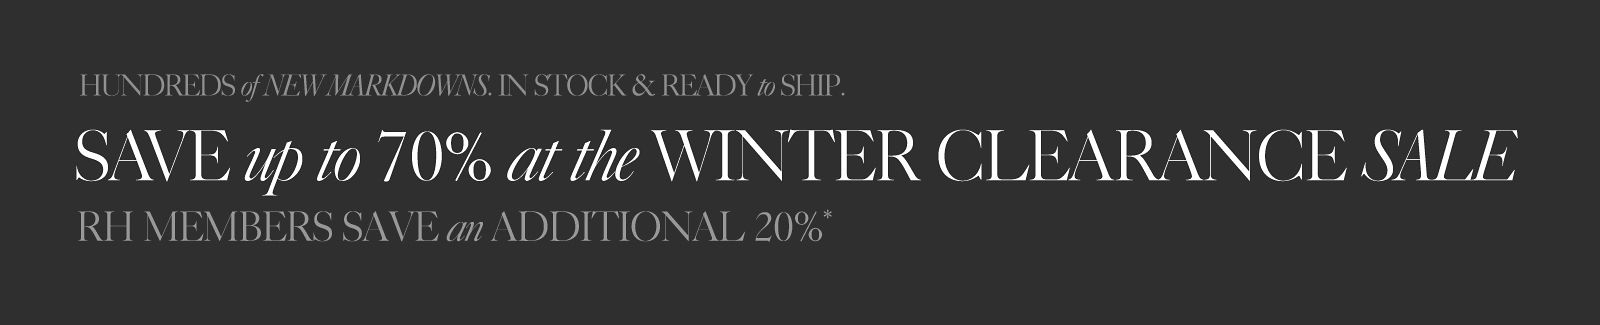 The Winter Clearance Sale. Save up to 70%.